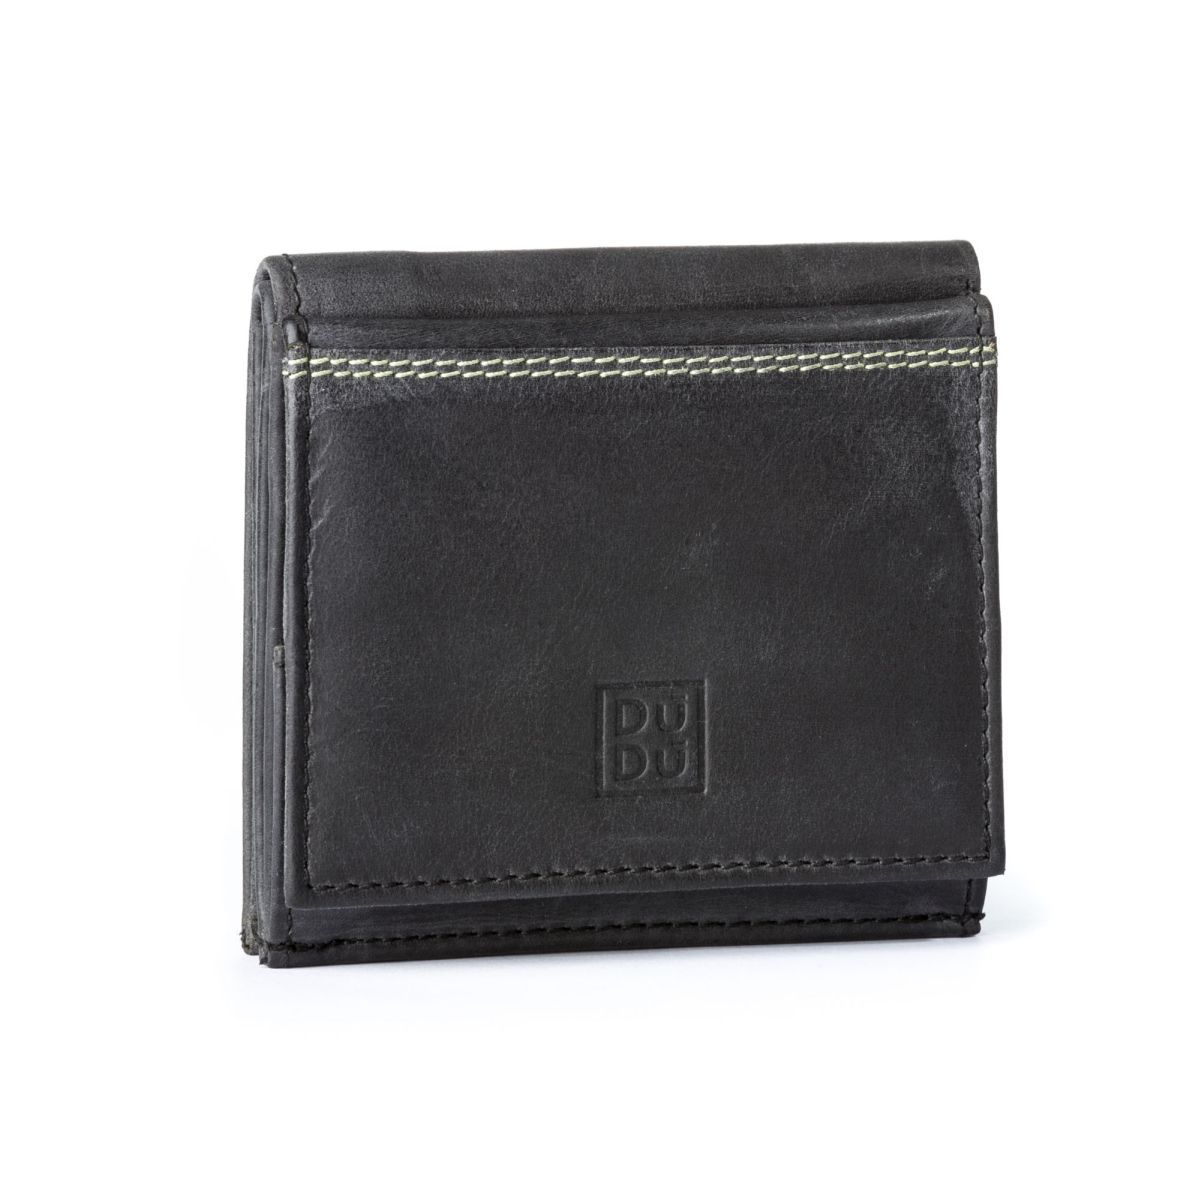 DUDU Credit card Holder Men Wallet Mini Slim in Genuine Leather Vintage Effect w